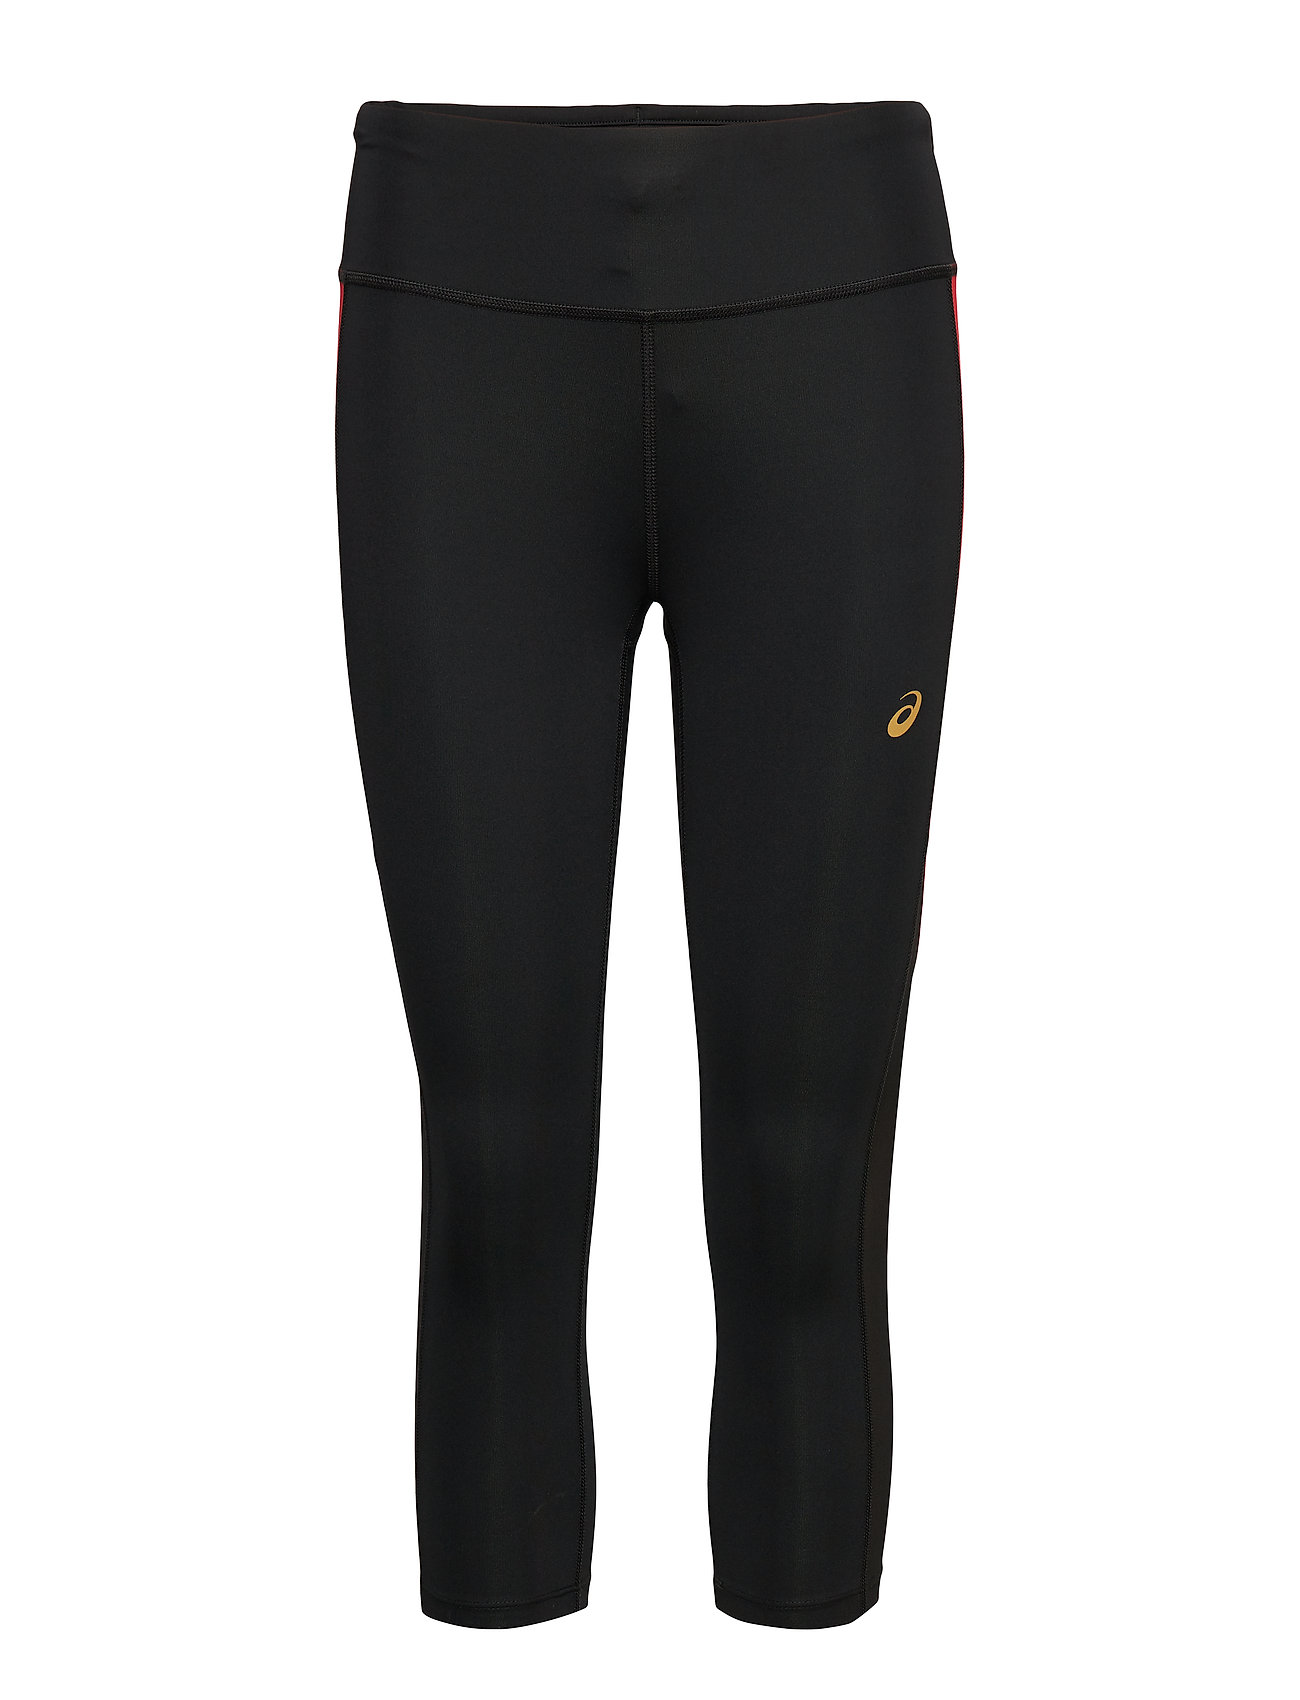 Asics CAPRI TIGHT